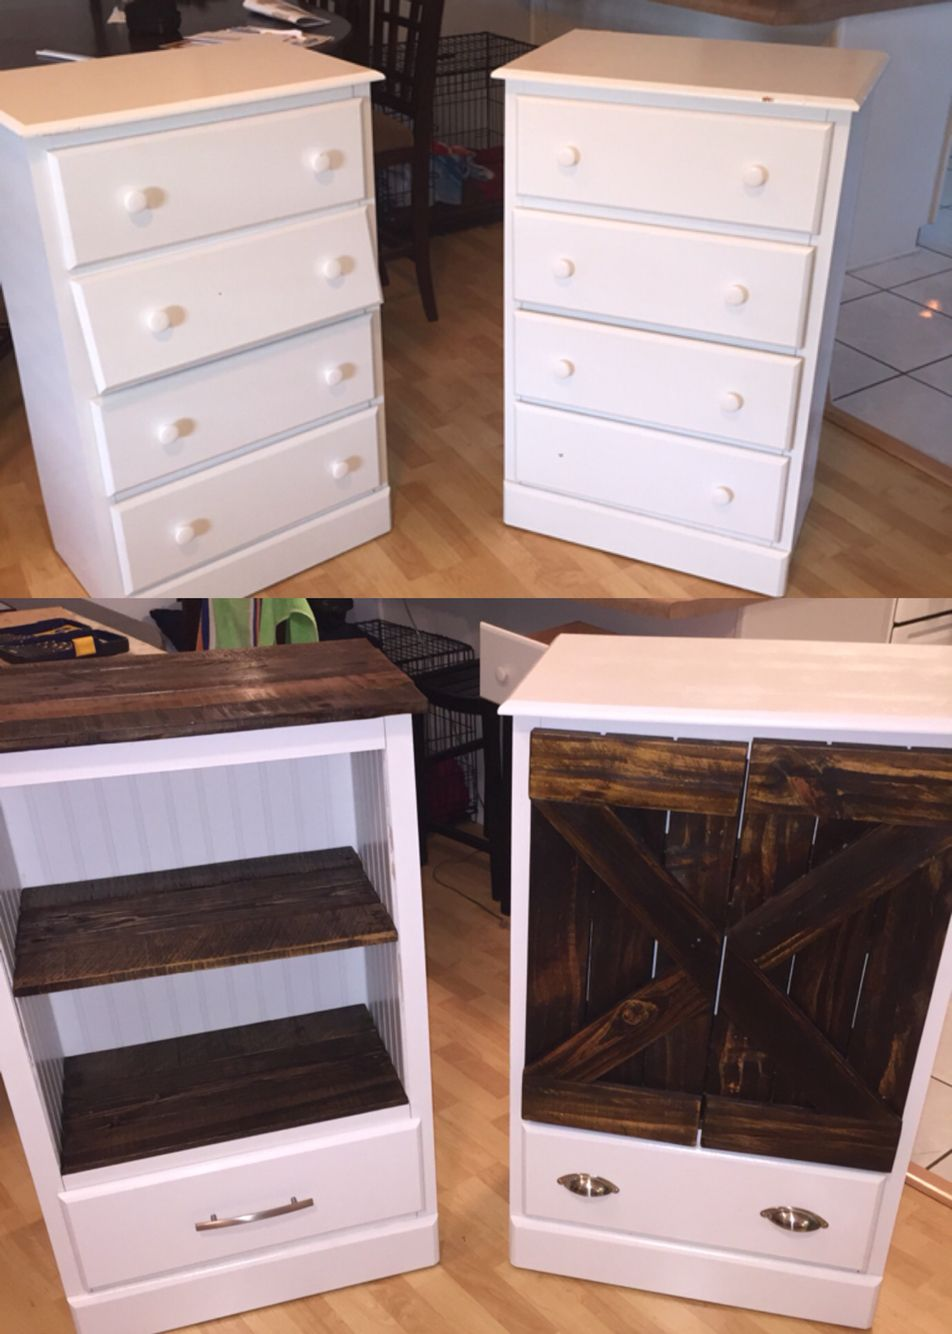 Before and after on a craigslist find. Doors and shelves